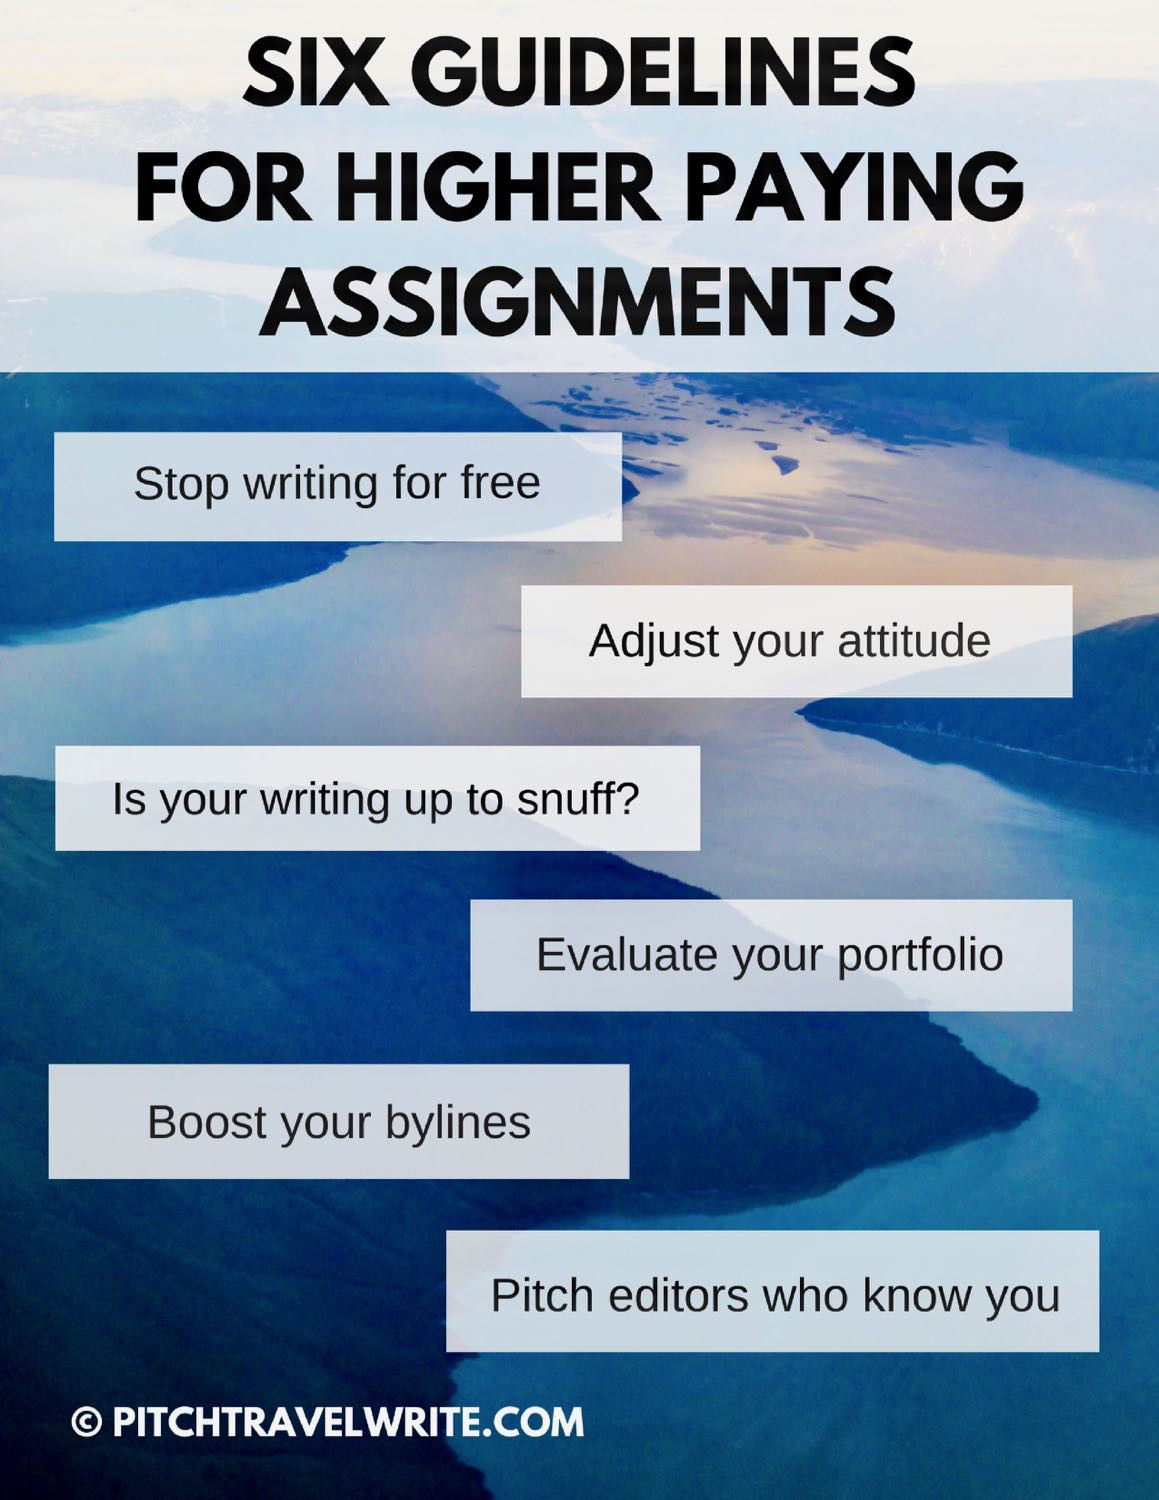 travel writers and higher paying assignments guidelines